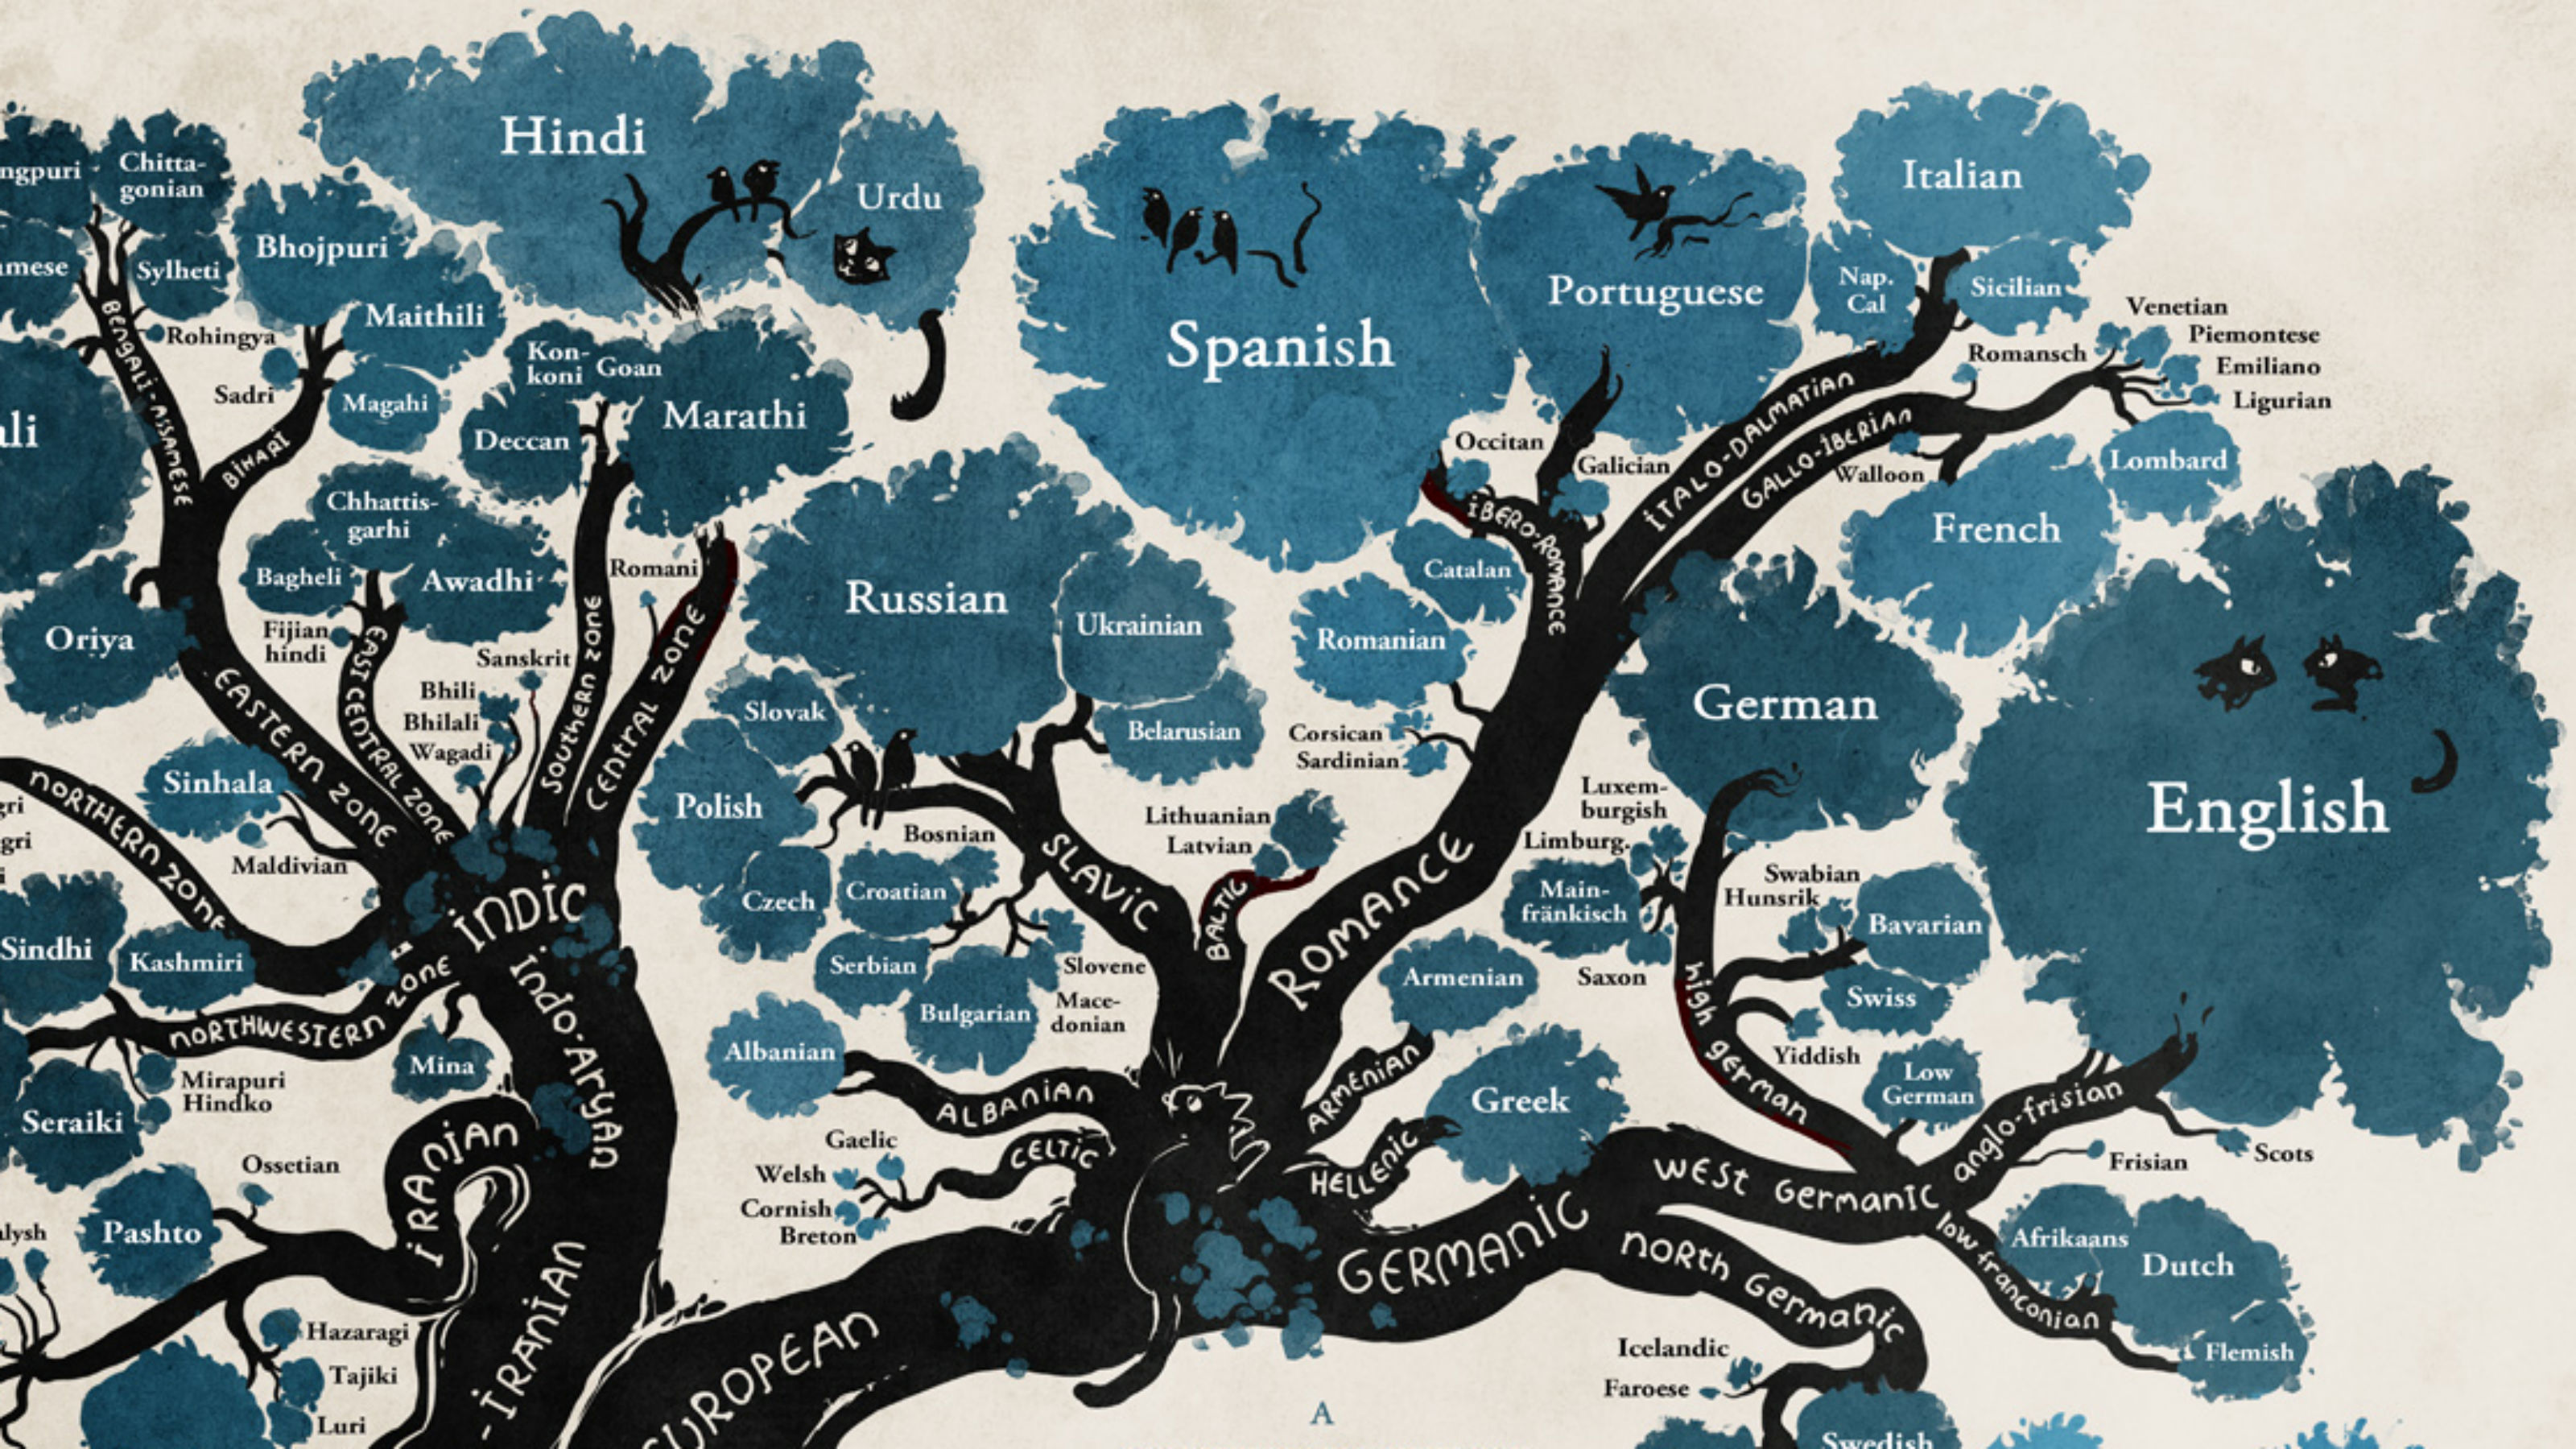 An illustrated linguistic tree of the history of languages.